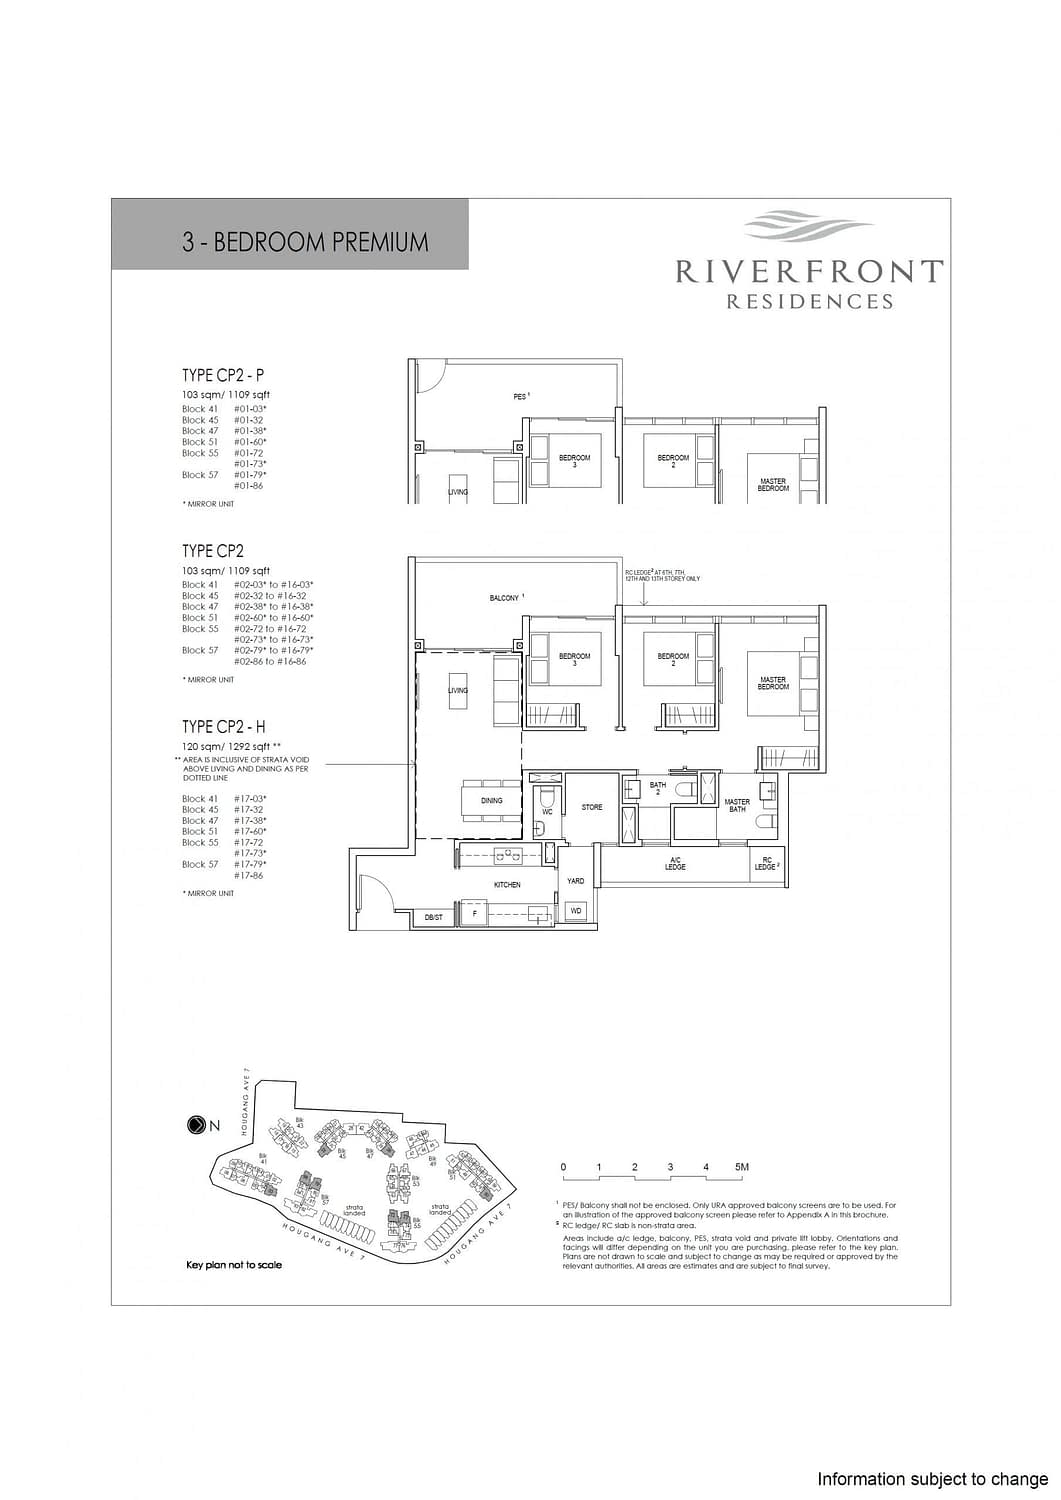 Riverfront Residences Riverfront Residences Floorplan CP2 scaled